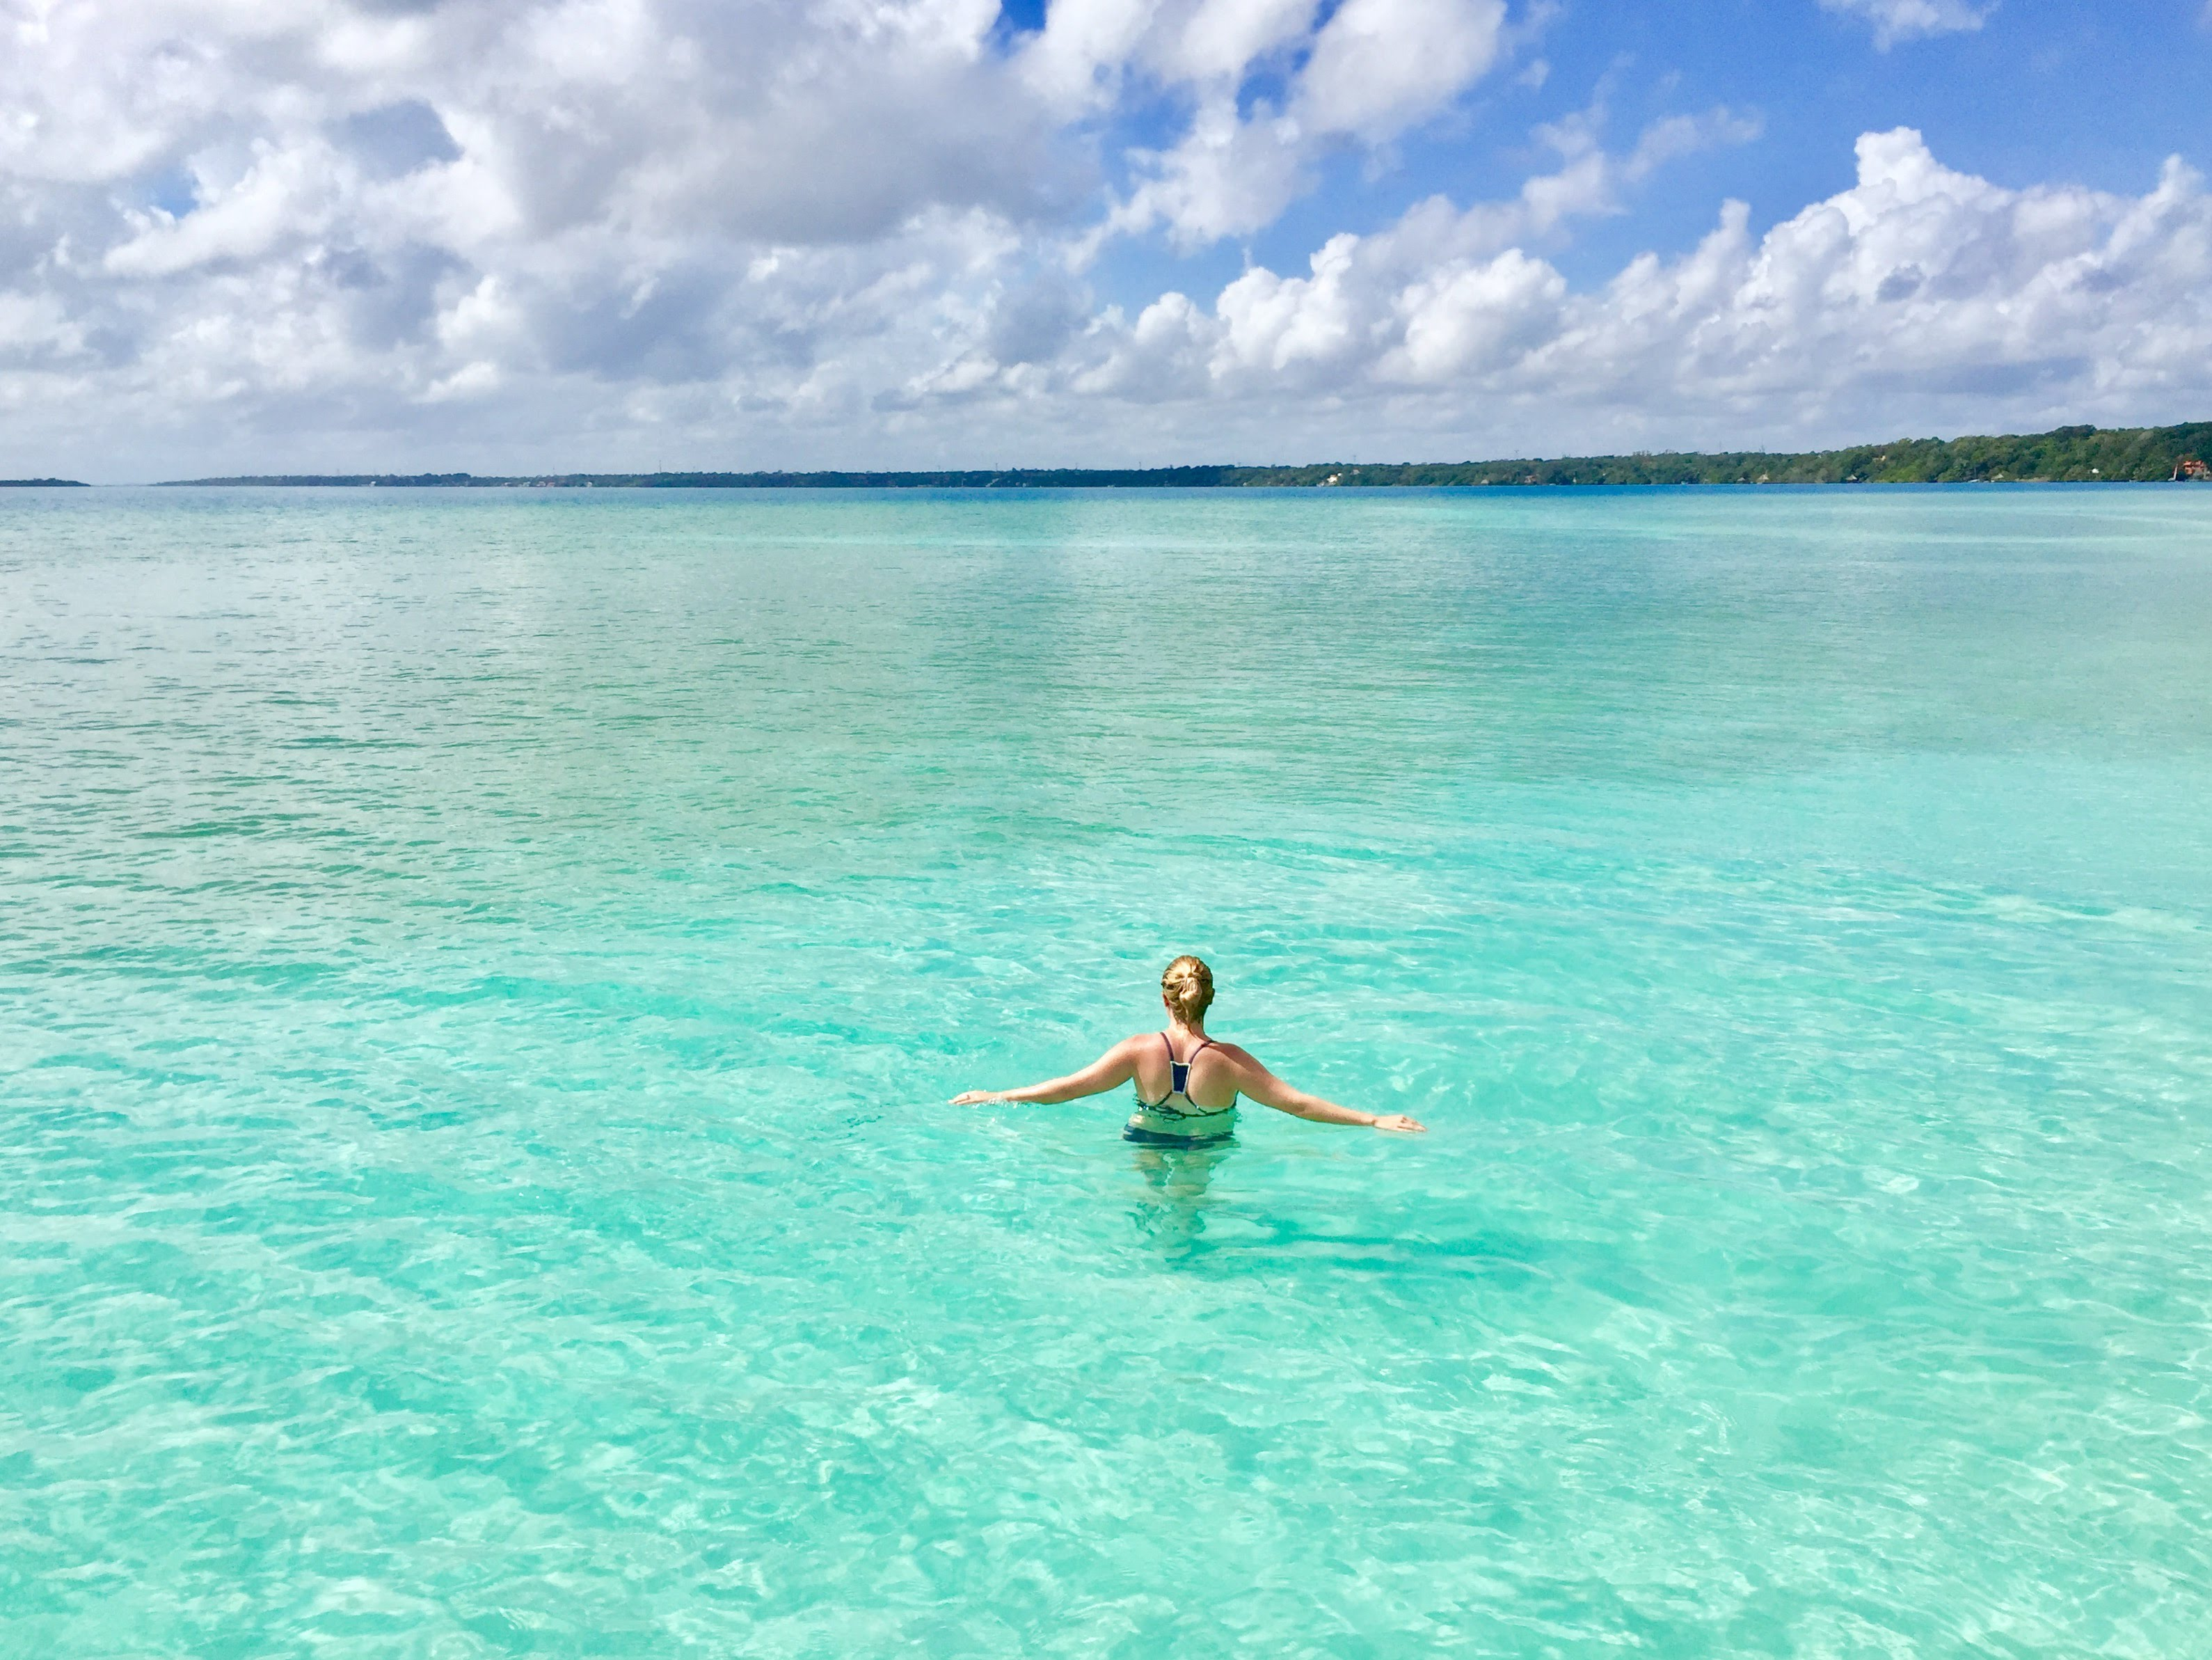 the blue waters of laguna bacalar